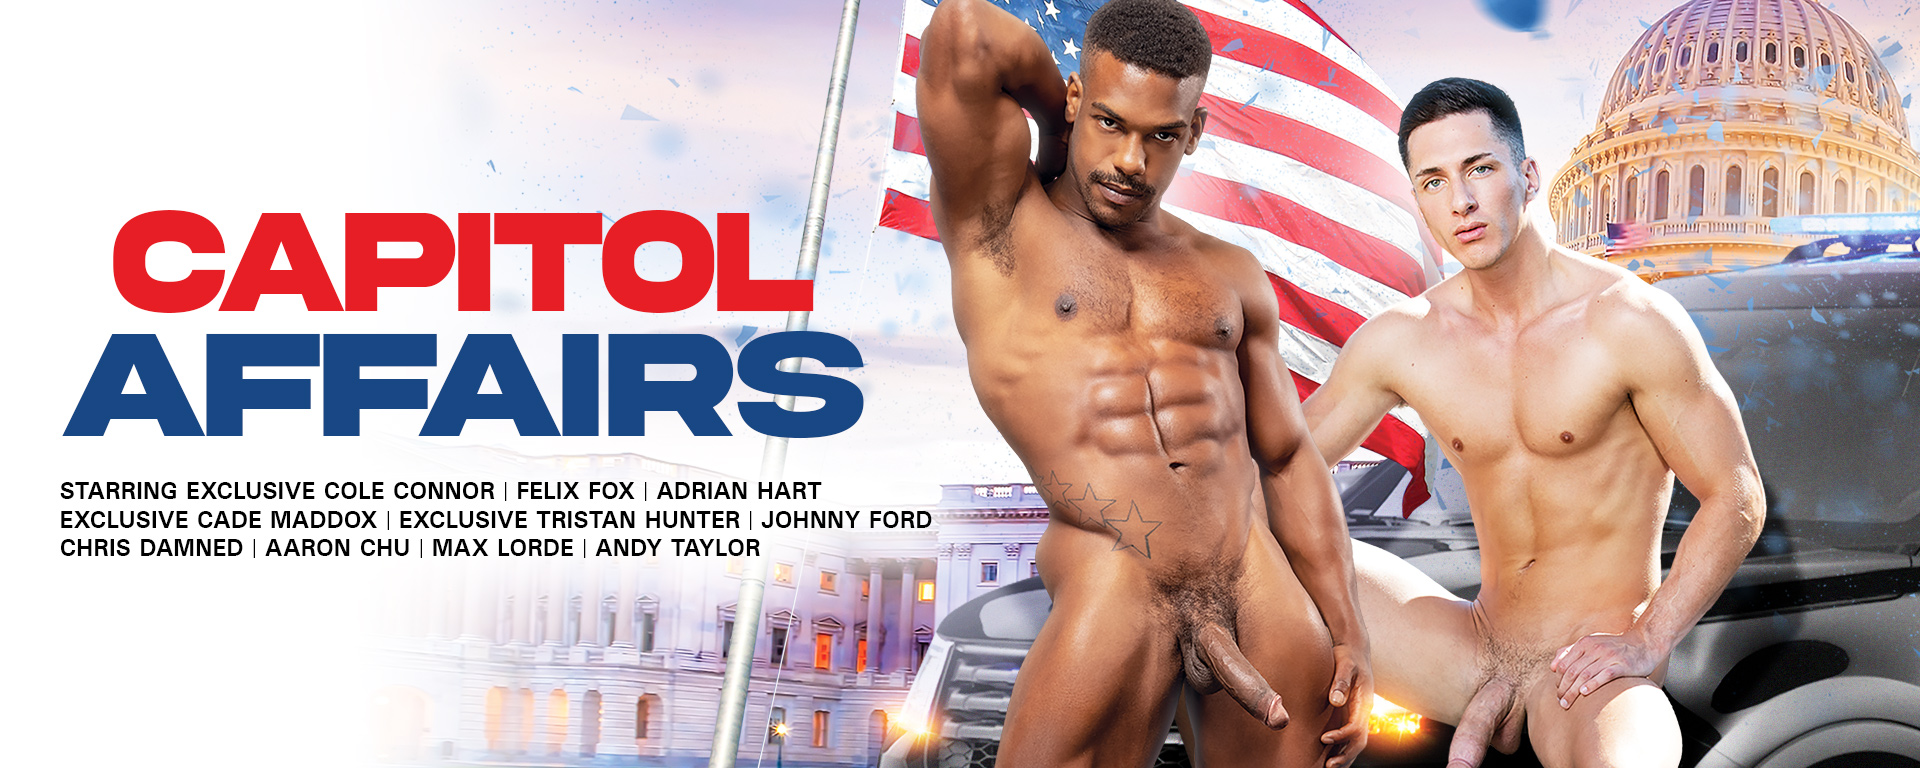 Hot House Capitol Affairs